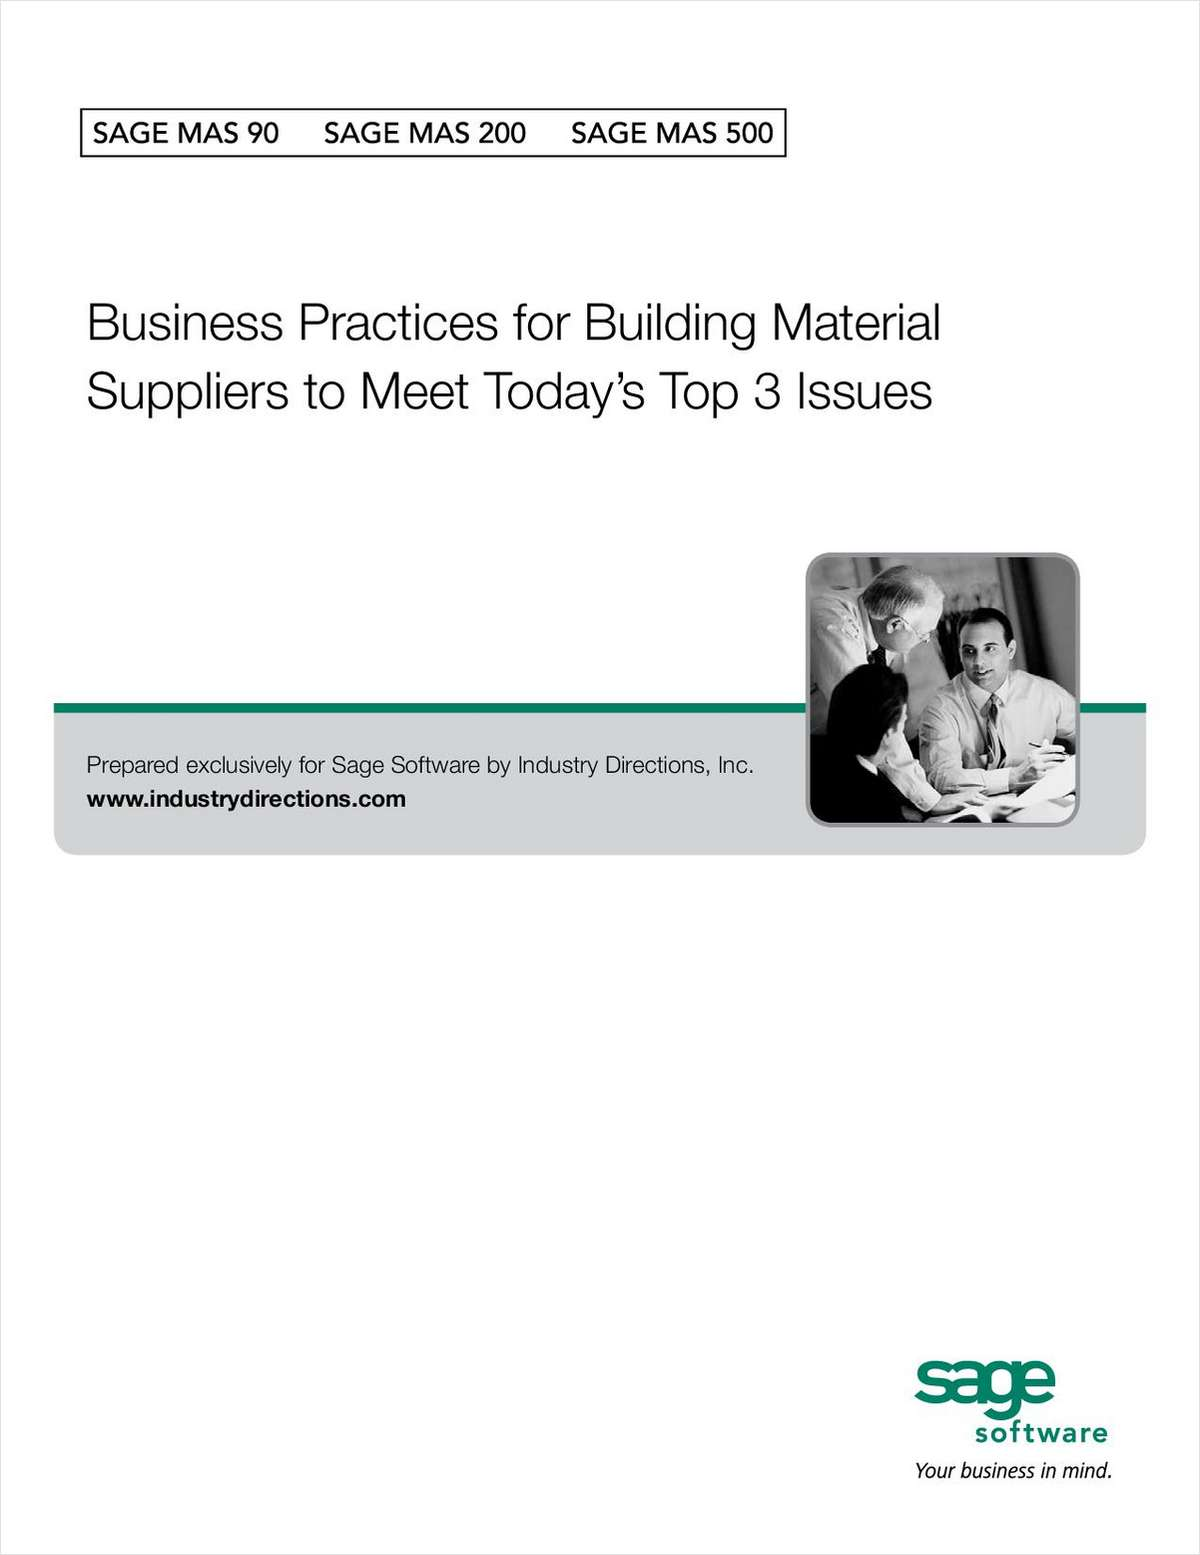 Business Practices for Building Material Suppliers to Meet Today's Top 3 Issues